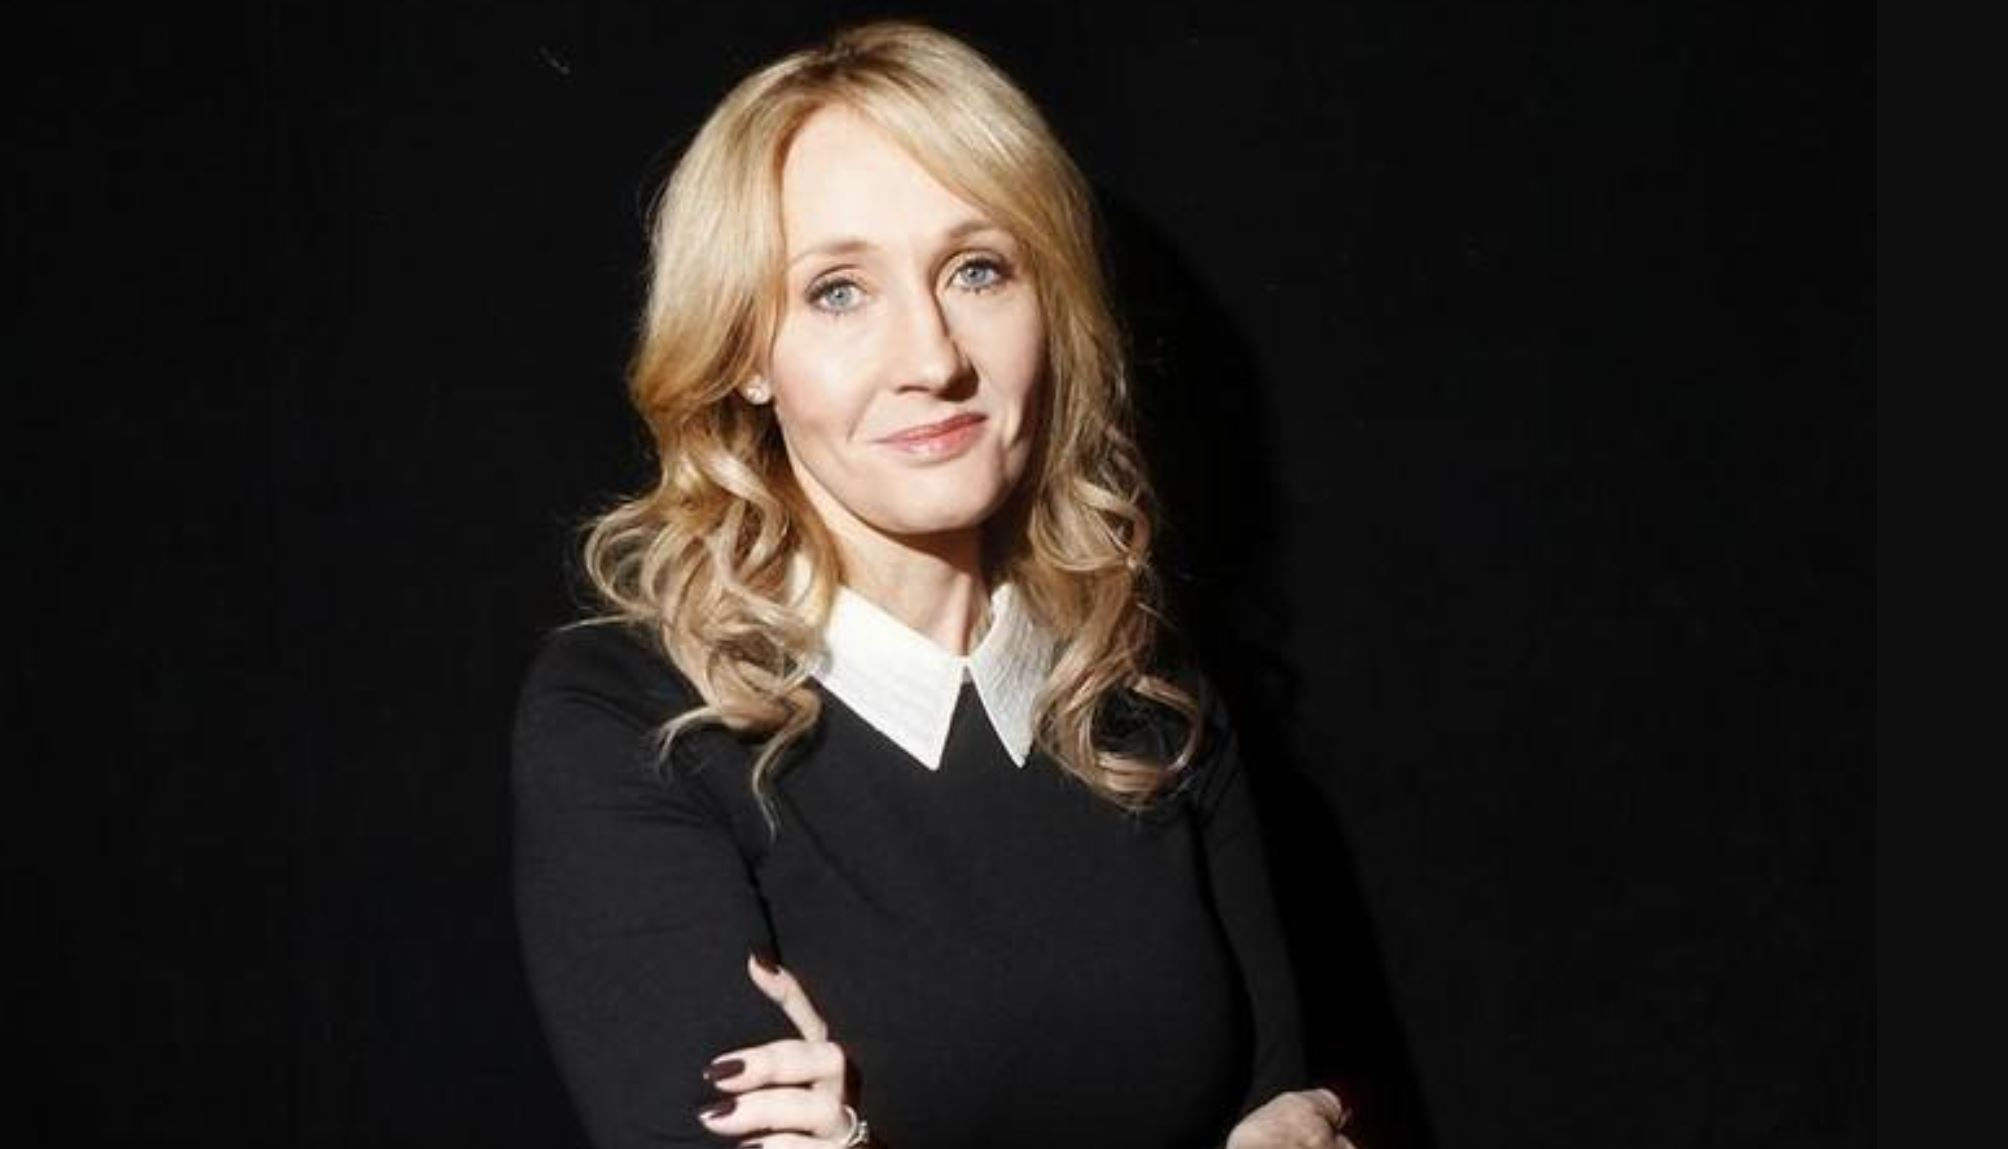 J.K. Rowling faces backlash again over 'anti-trans' tweets